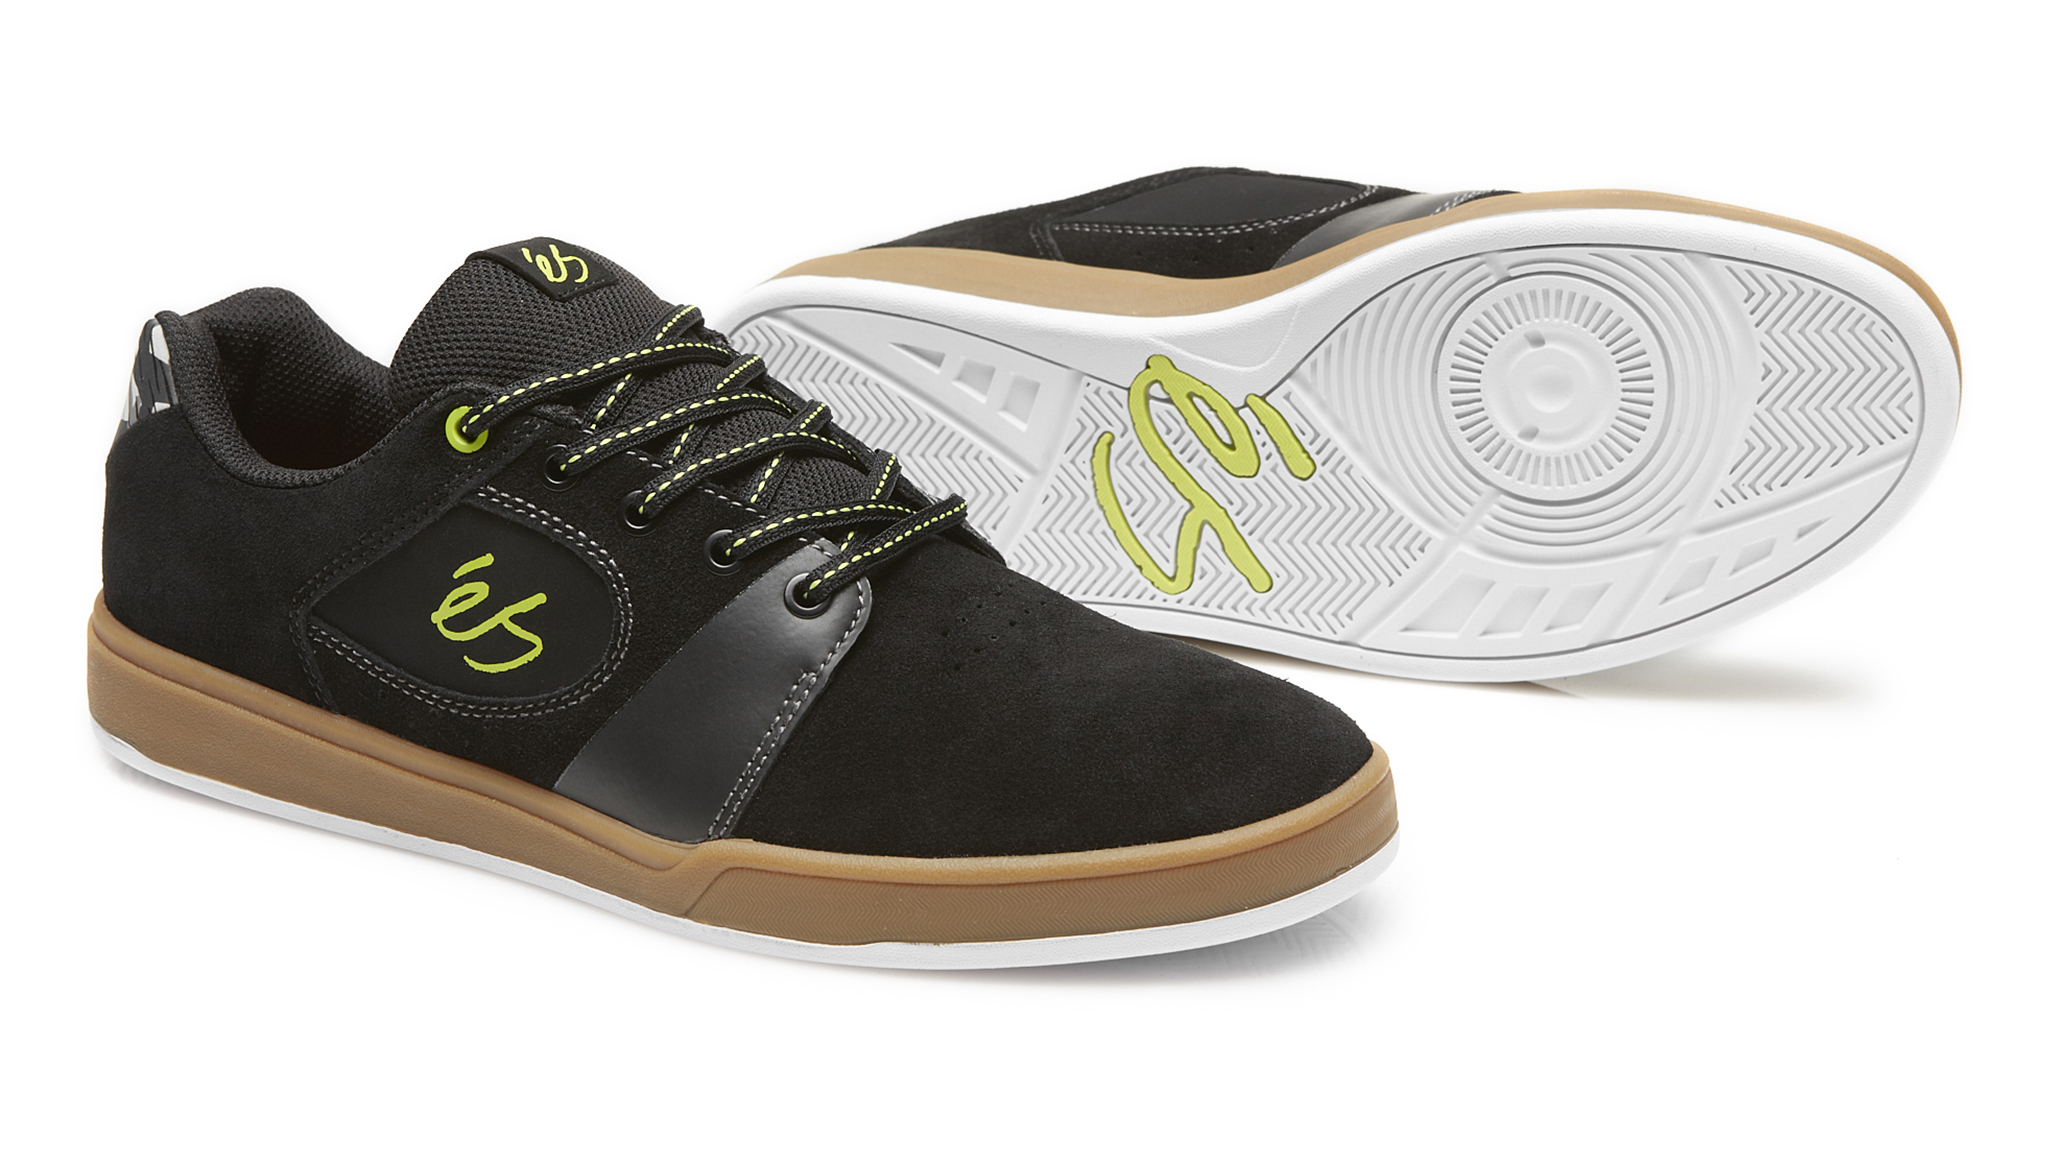 The new Accelerate model from S footwear.